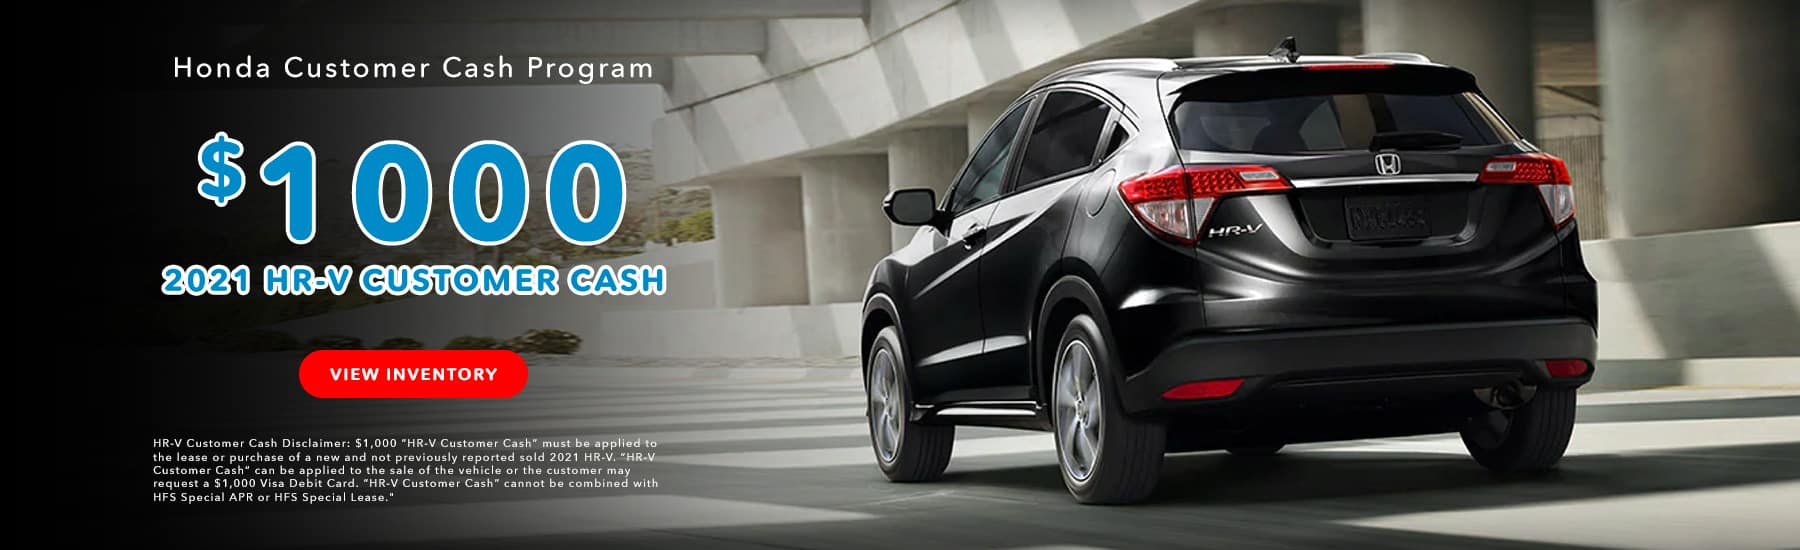 Honda Customer Cash Program$1000 Customer Cash Available on 2021 HR-V Models